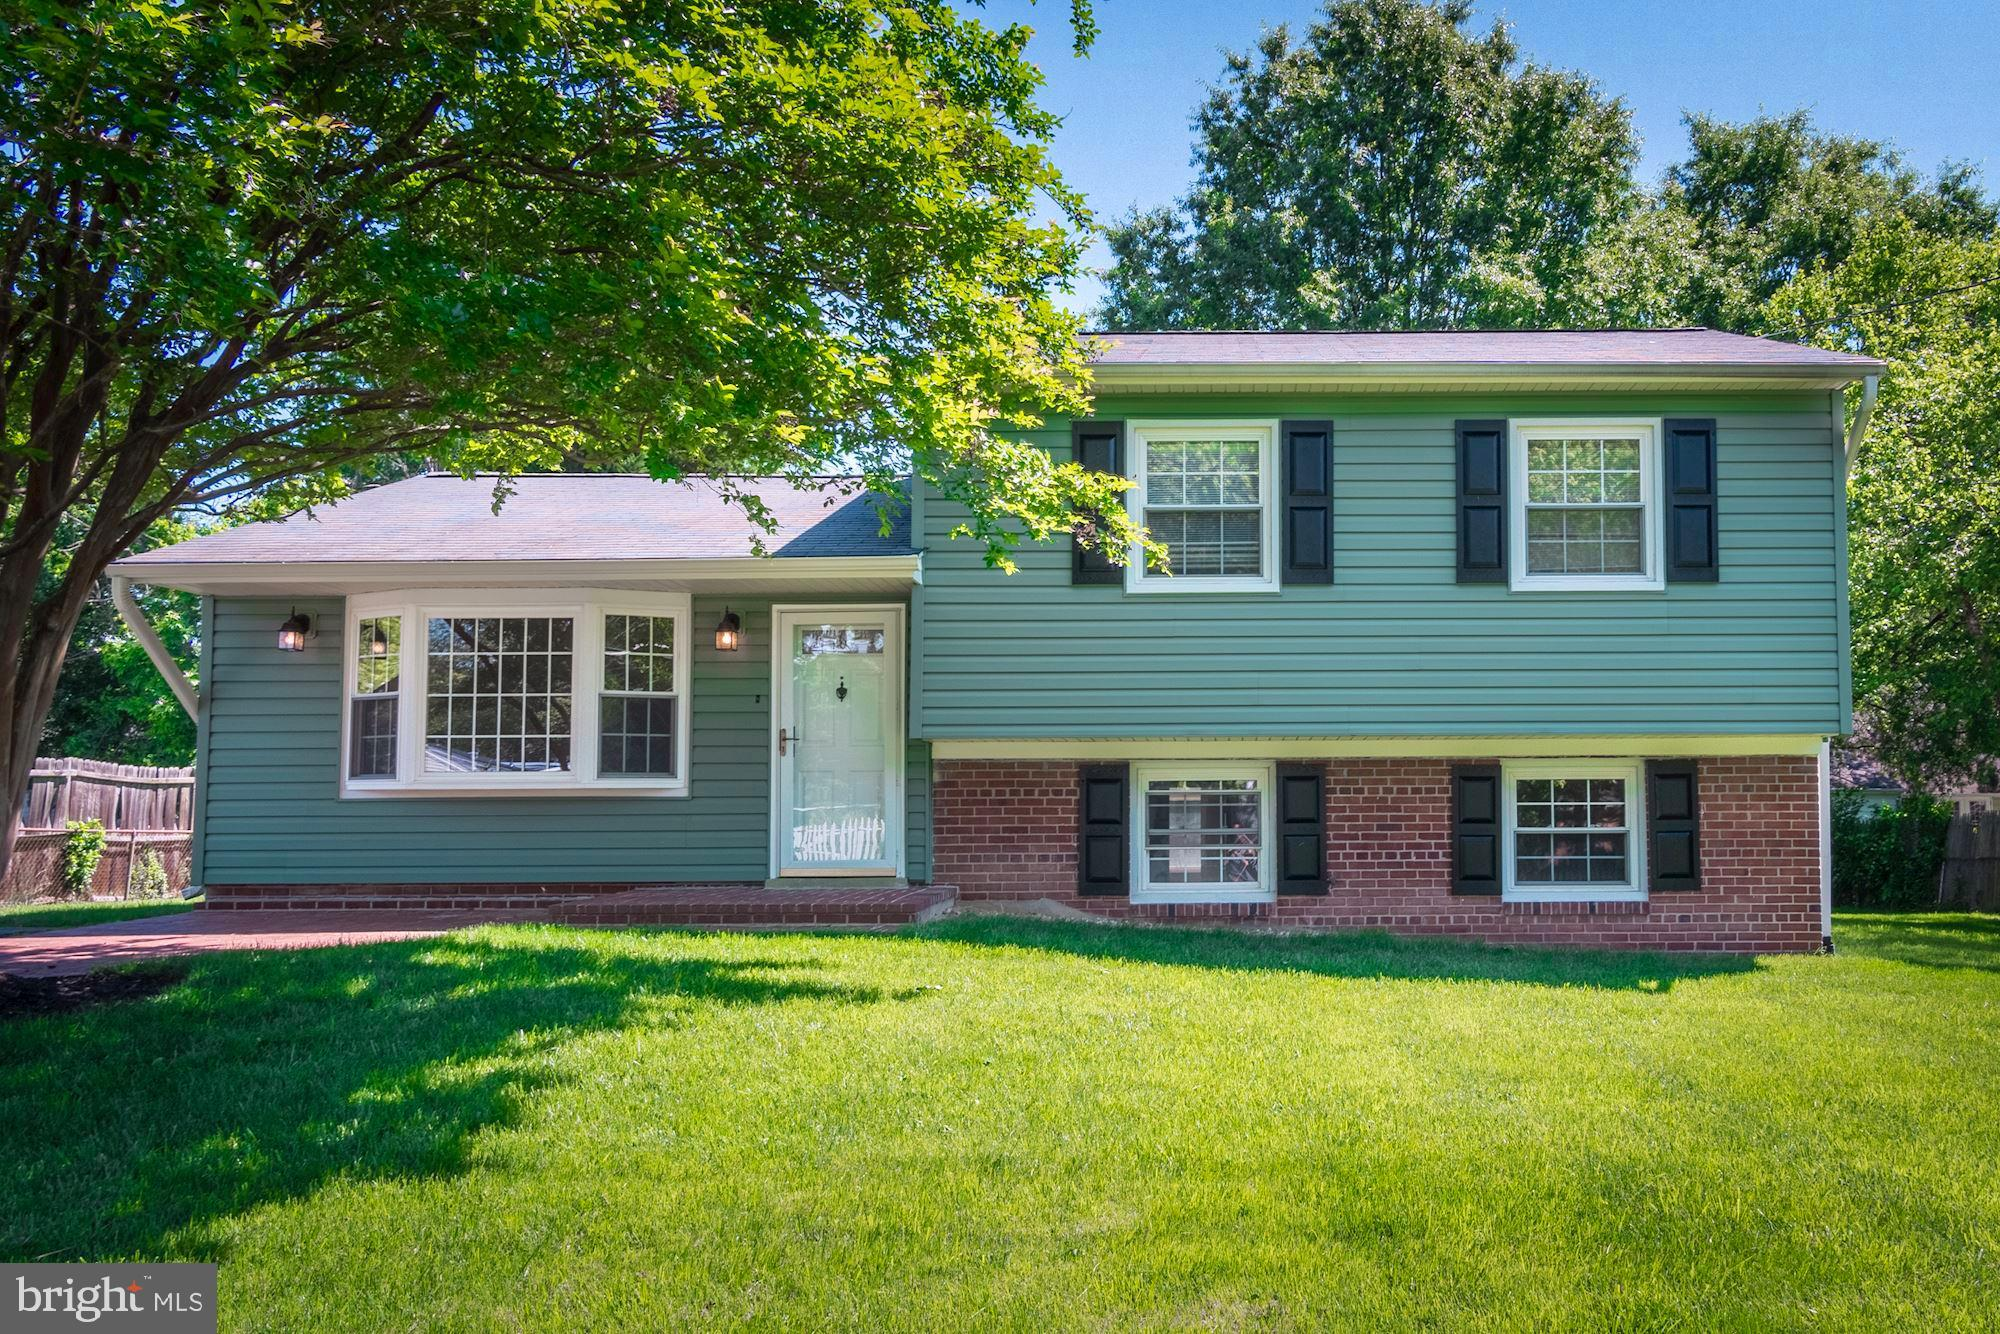 Beautifully renovated home near Mount Vernon and Fort Belvoir! Renovated Kitchen & Bathrooms, Hardwood Floors, Great Storage, Separate Family Room, Laundry Room w/Workshop Area, Rear Patio and Lots of Storage. Gorgeous!